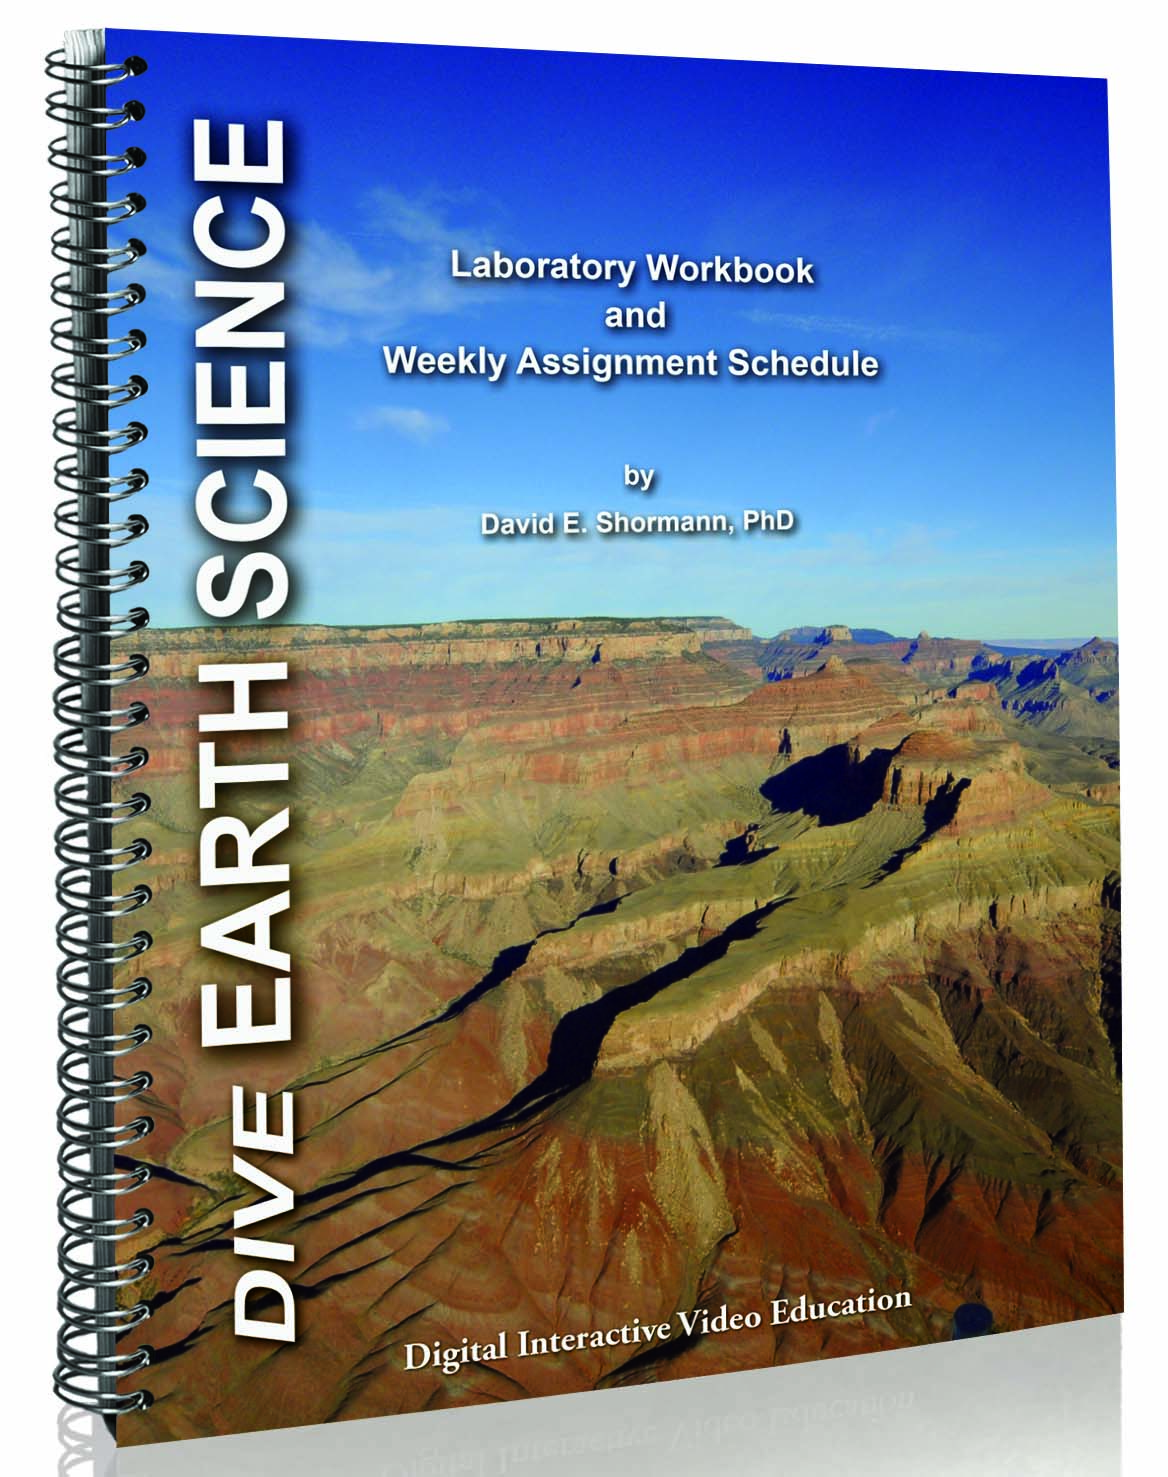 Lab Workbook for DIVE Earth Science - CD, Download, and eLearning ...